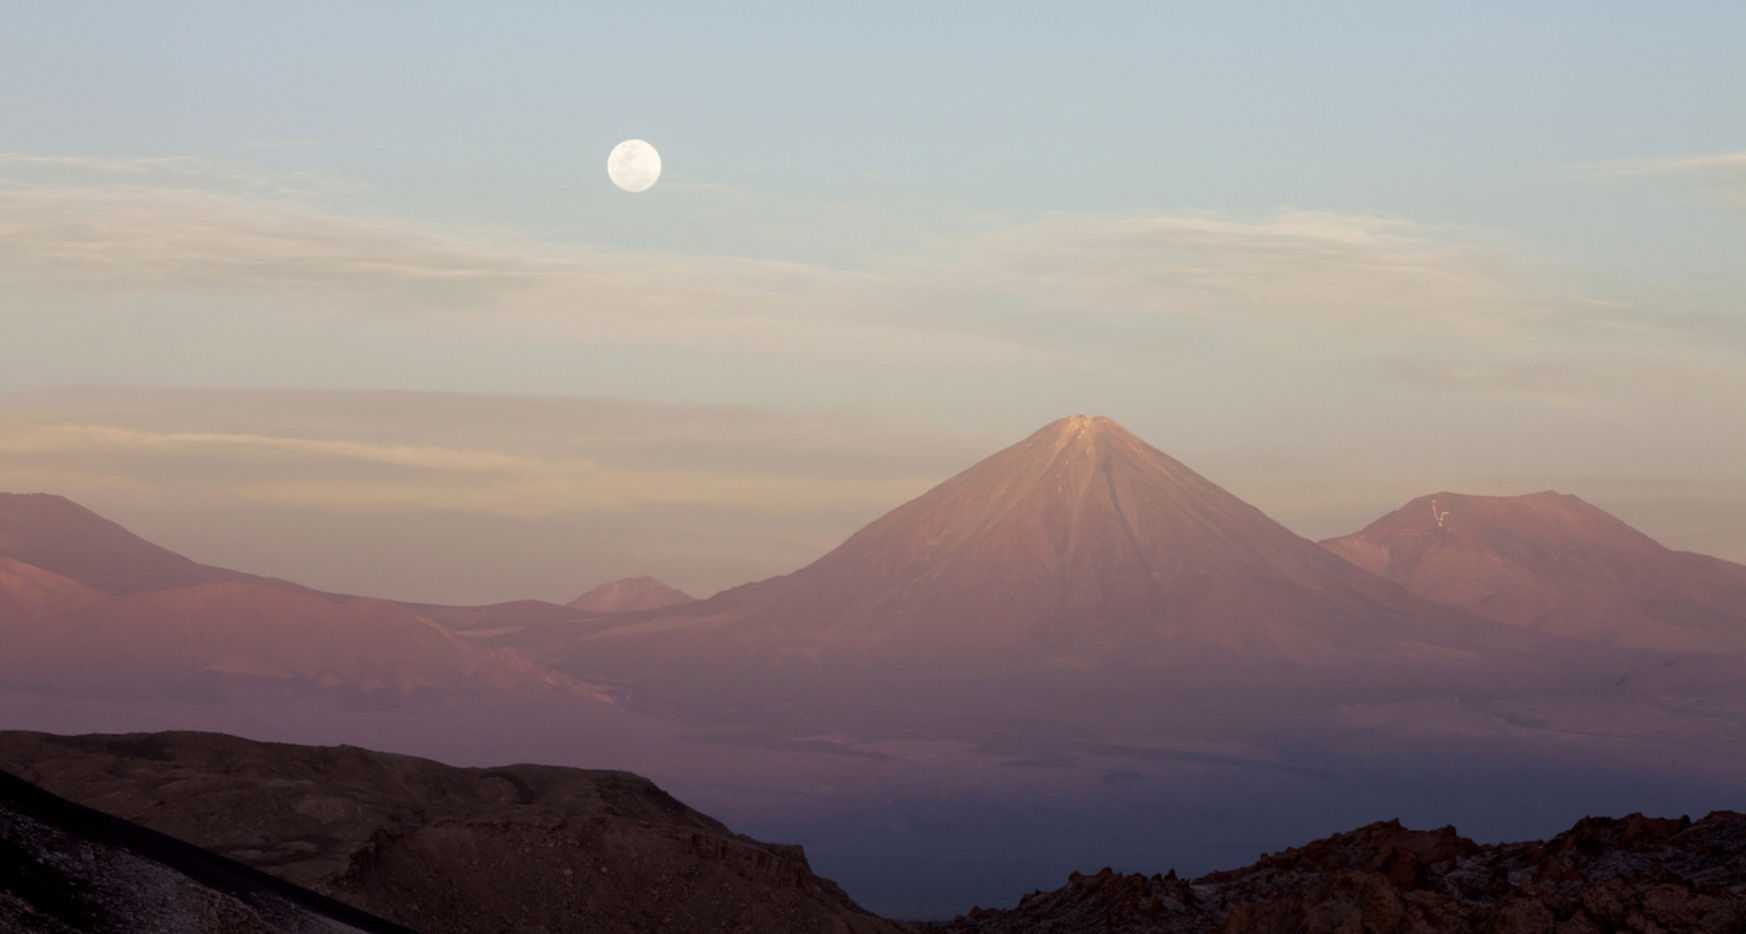 Moonrise over Licancabur volcano (19,423 ft) in the Atacama desert